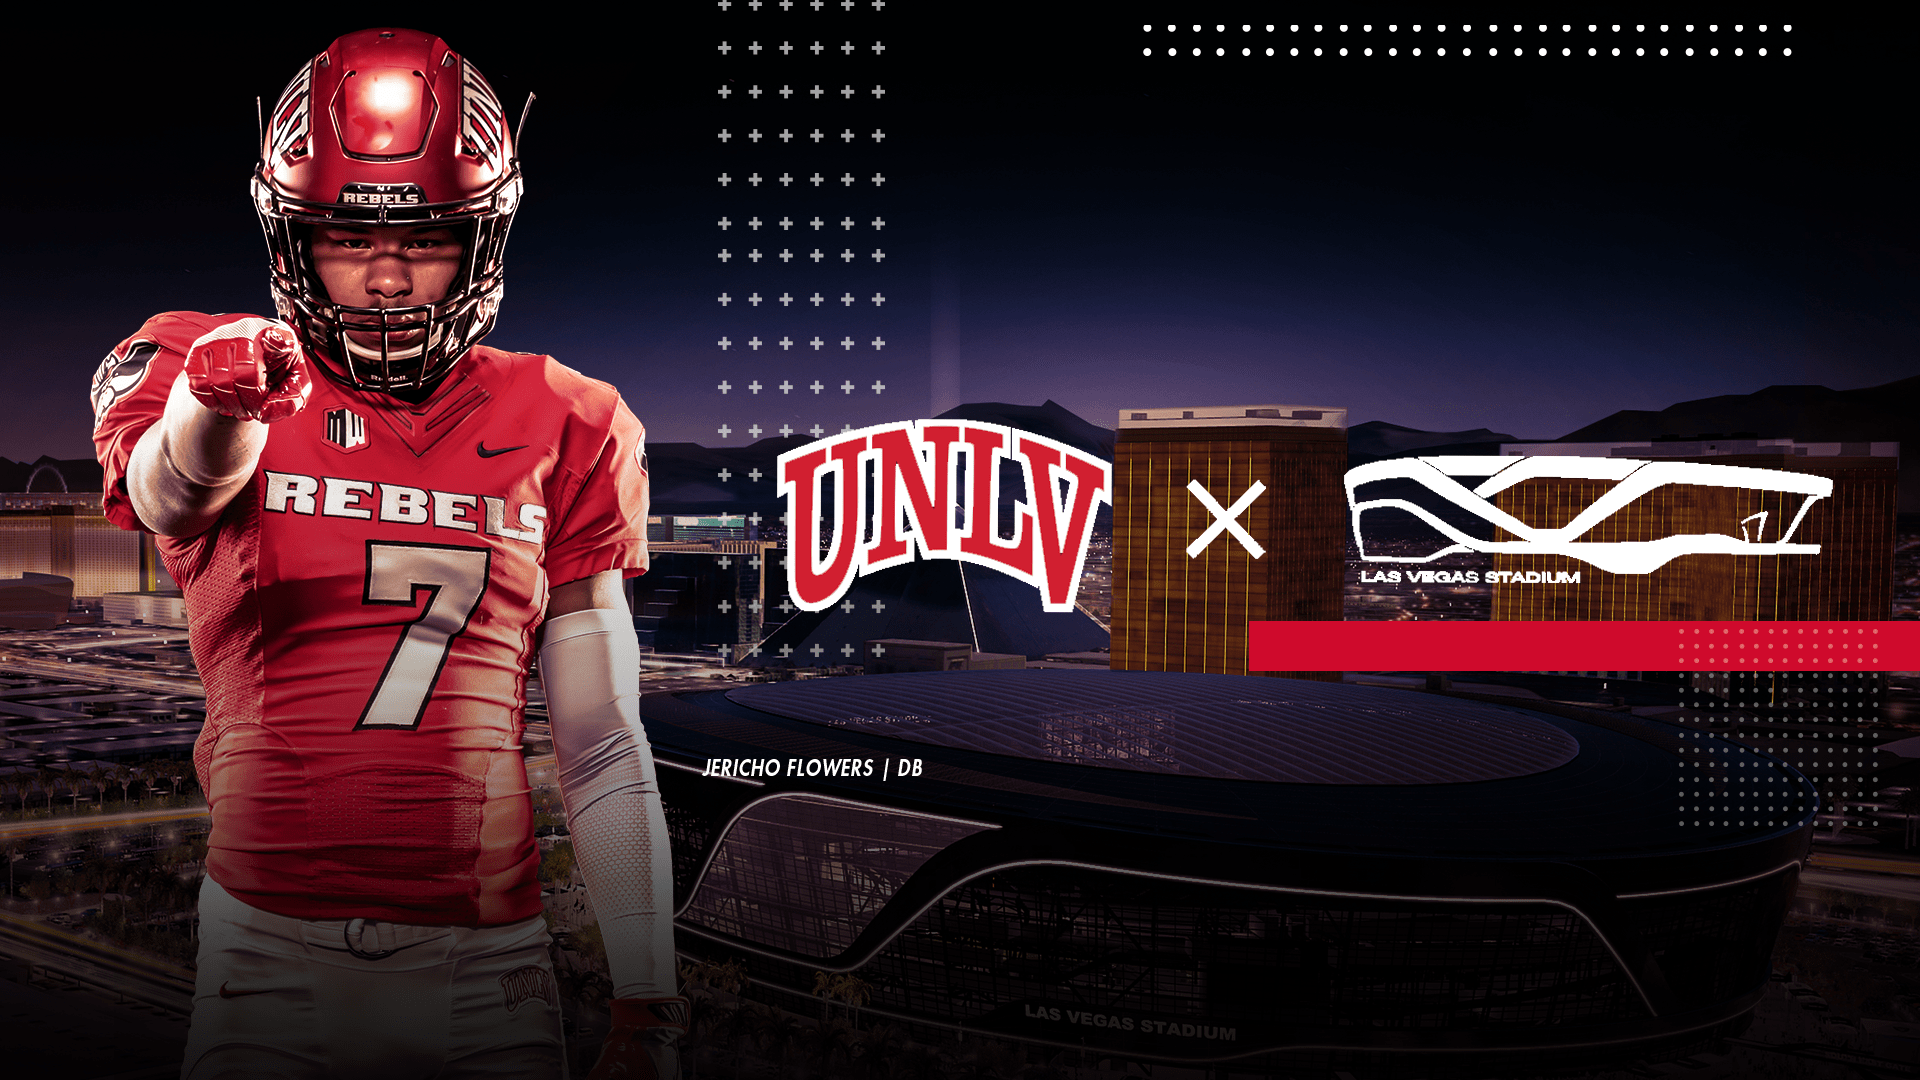 Unlv Is Making Loyal Football Fans A Priority